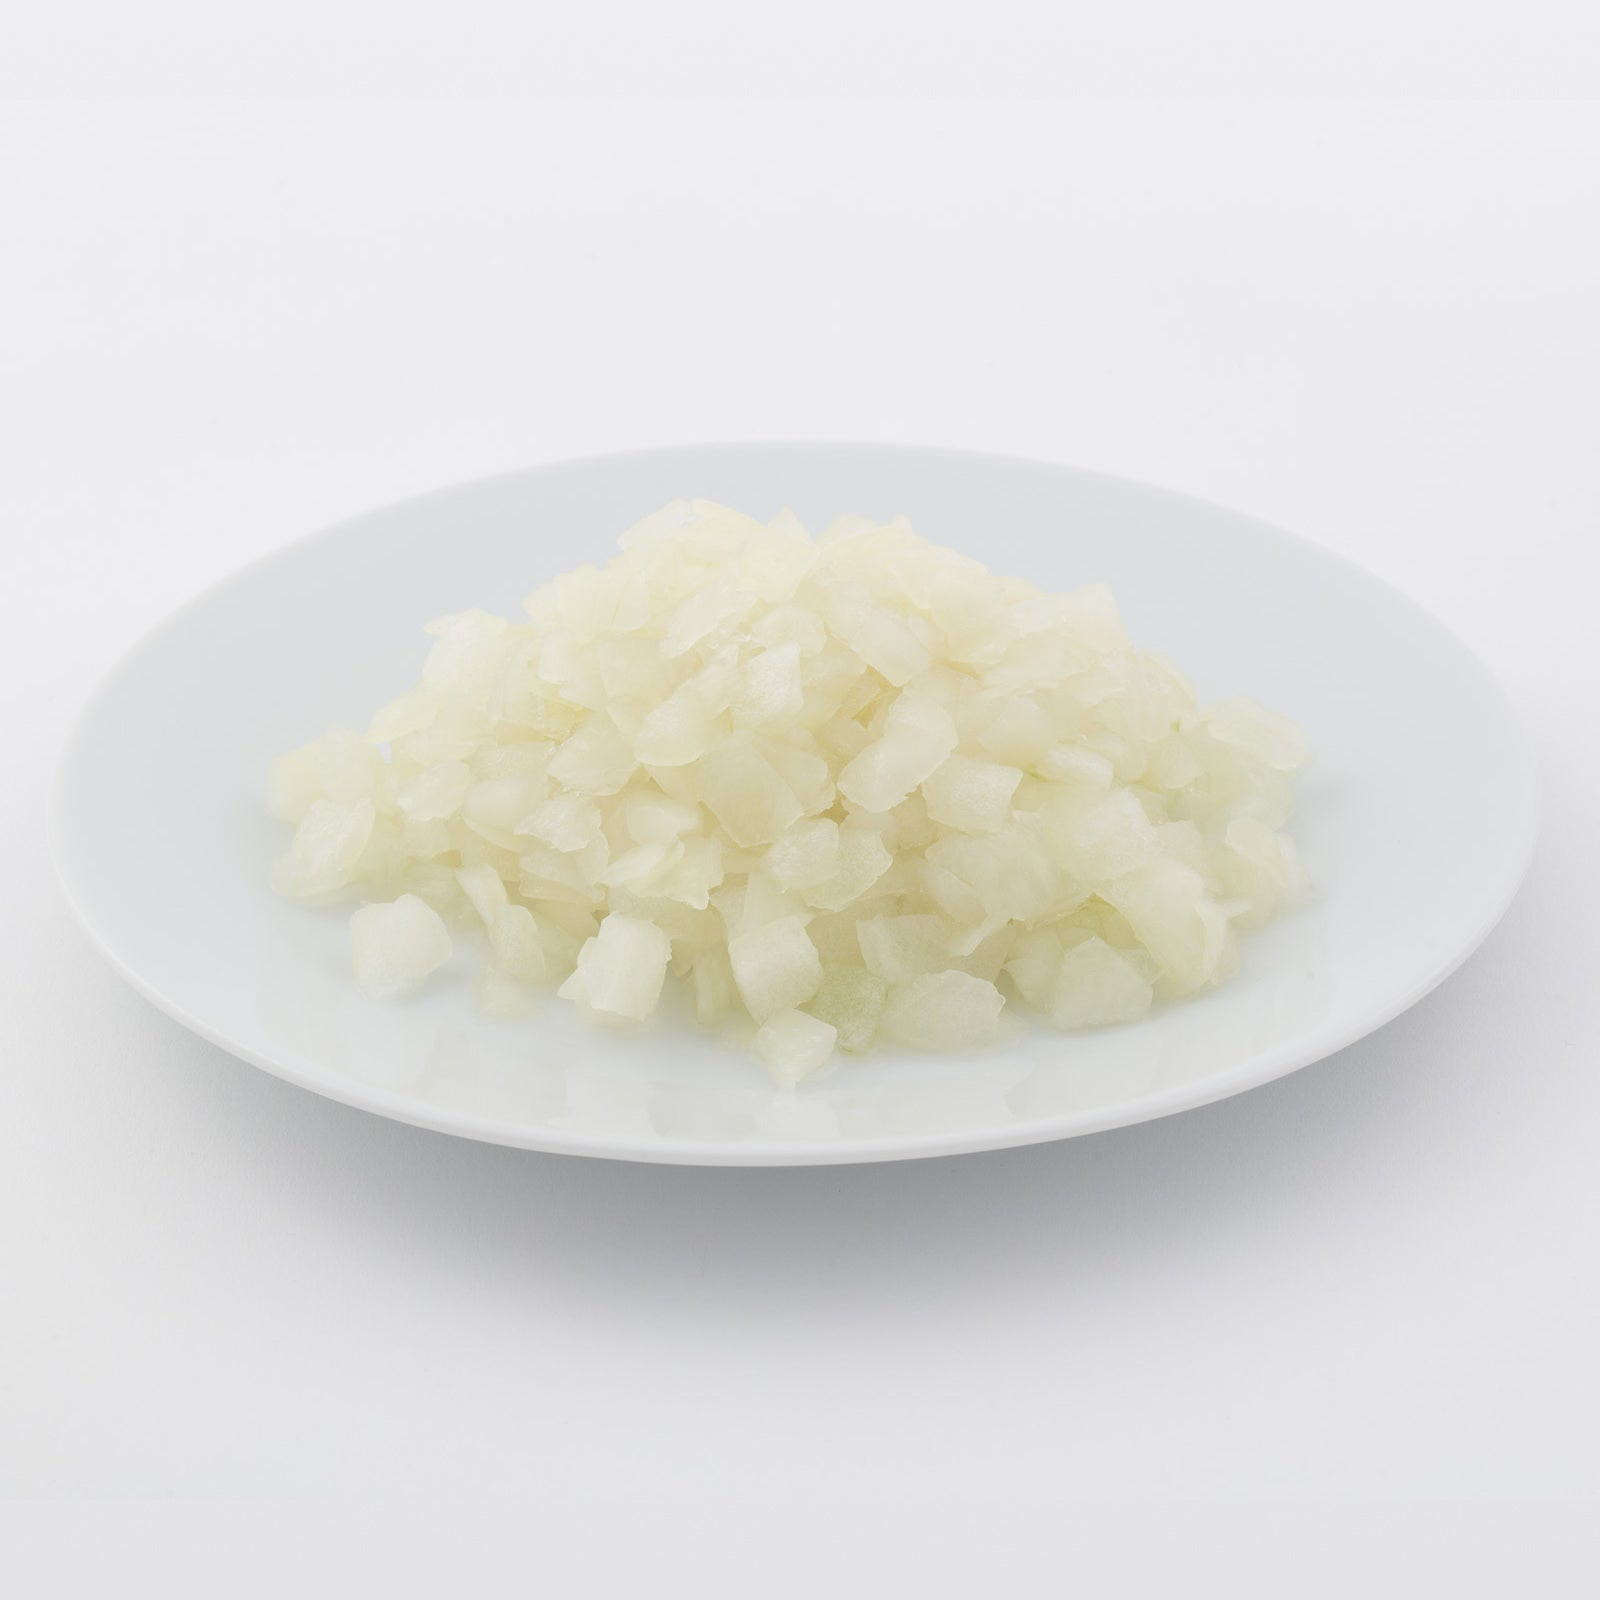 BELOW ZERO Diced white onions (blanched)